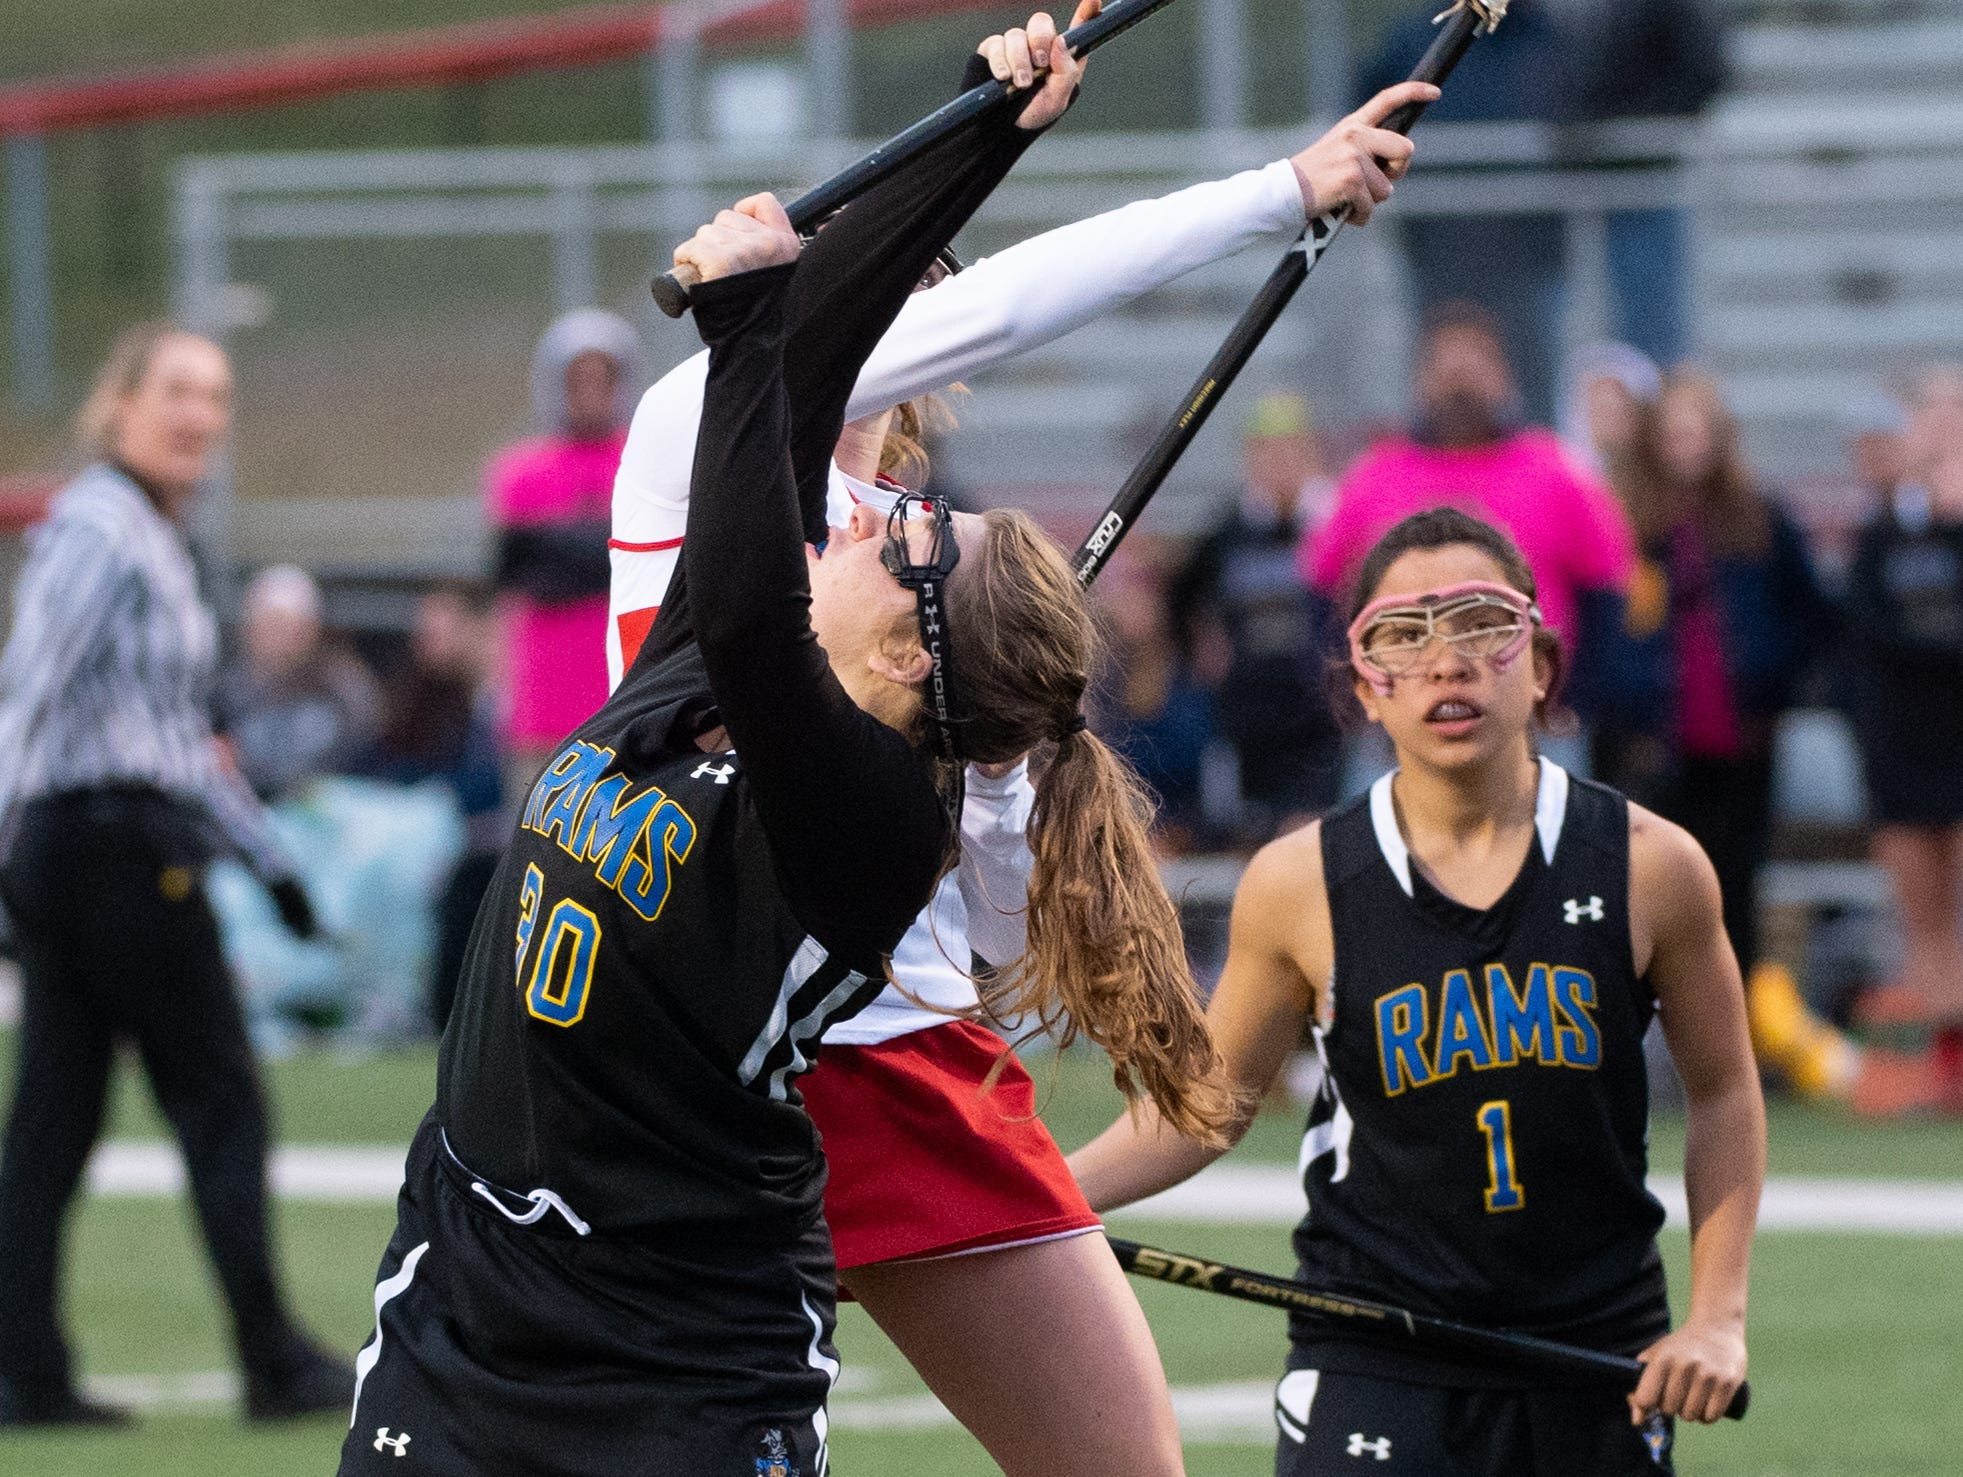 Lily Dressel (30) looks to secure the ball during the girls' lacrosse game between Susquehannock and Kennard-Dale, April 2, 2019 at Susquehannock High School. The Rams defeated the Warriors 17 to 2.